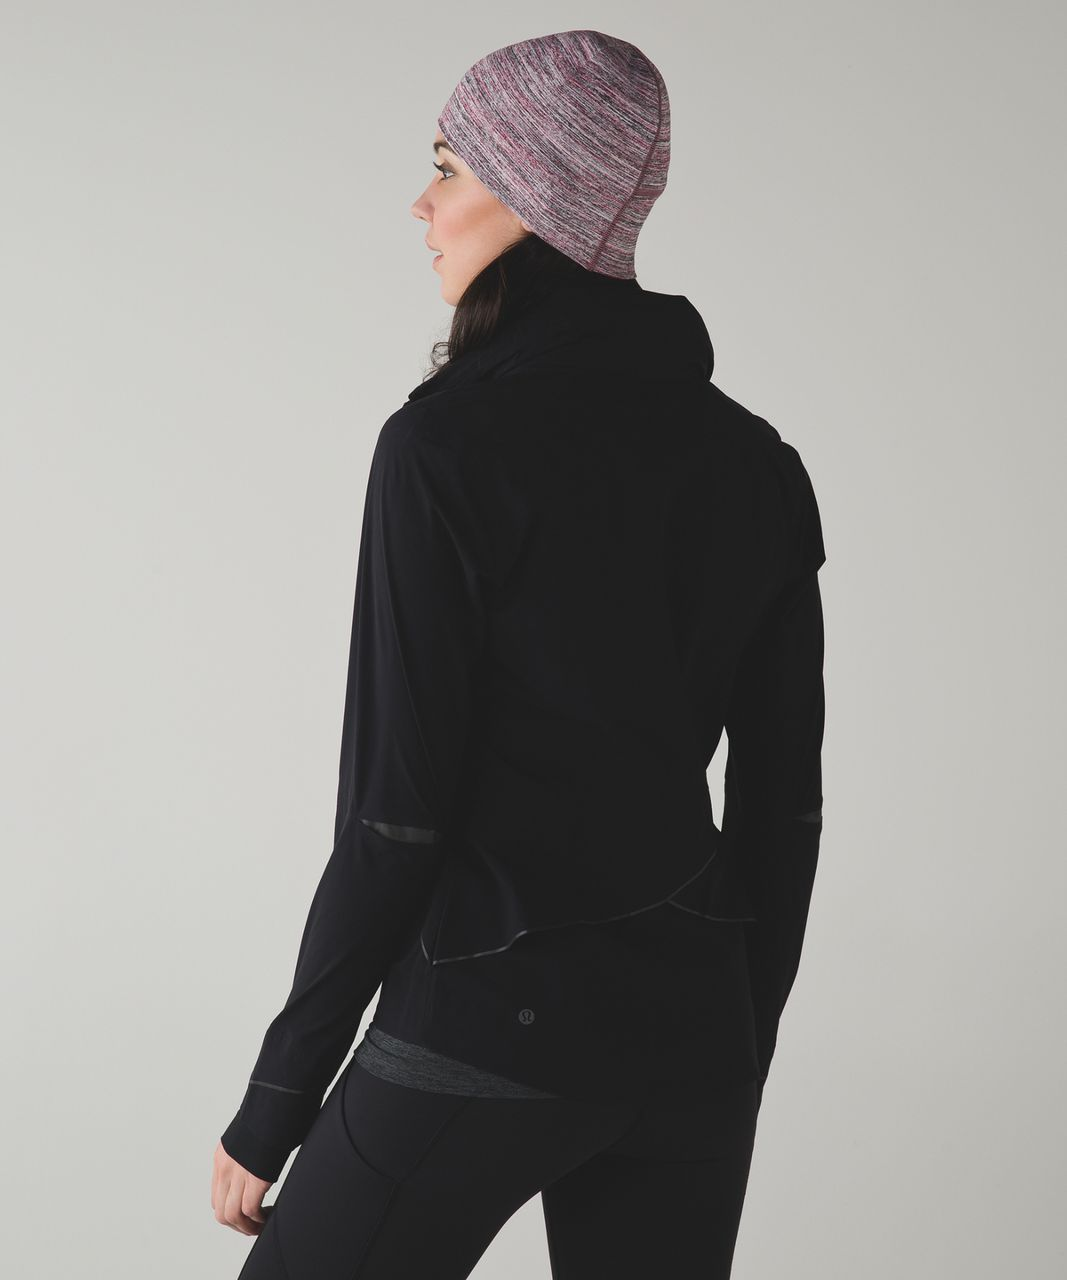 6478be4d50b6e Lululemon Run And Done Toque - Space Dye Camo Berry Rumble Multi ...